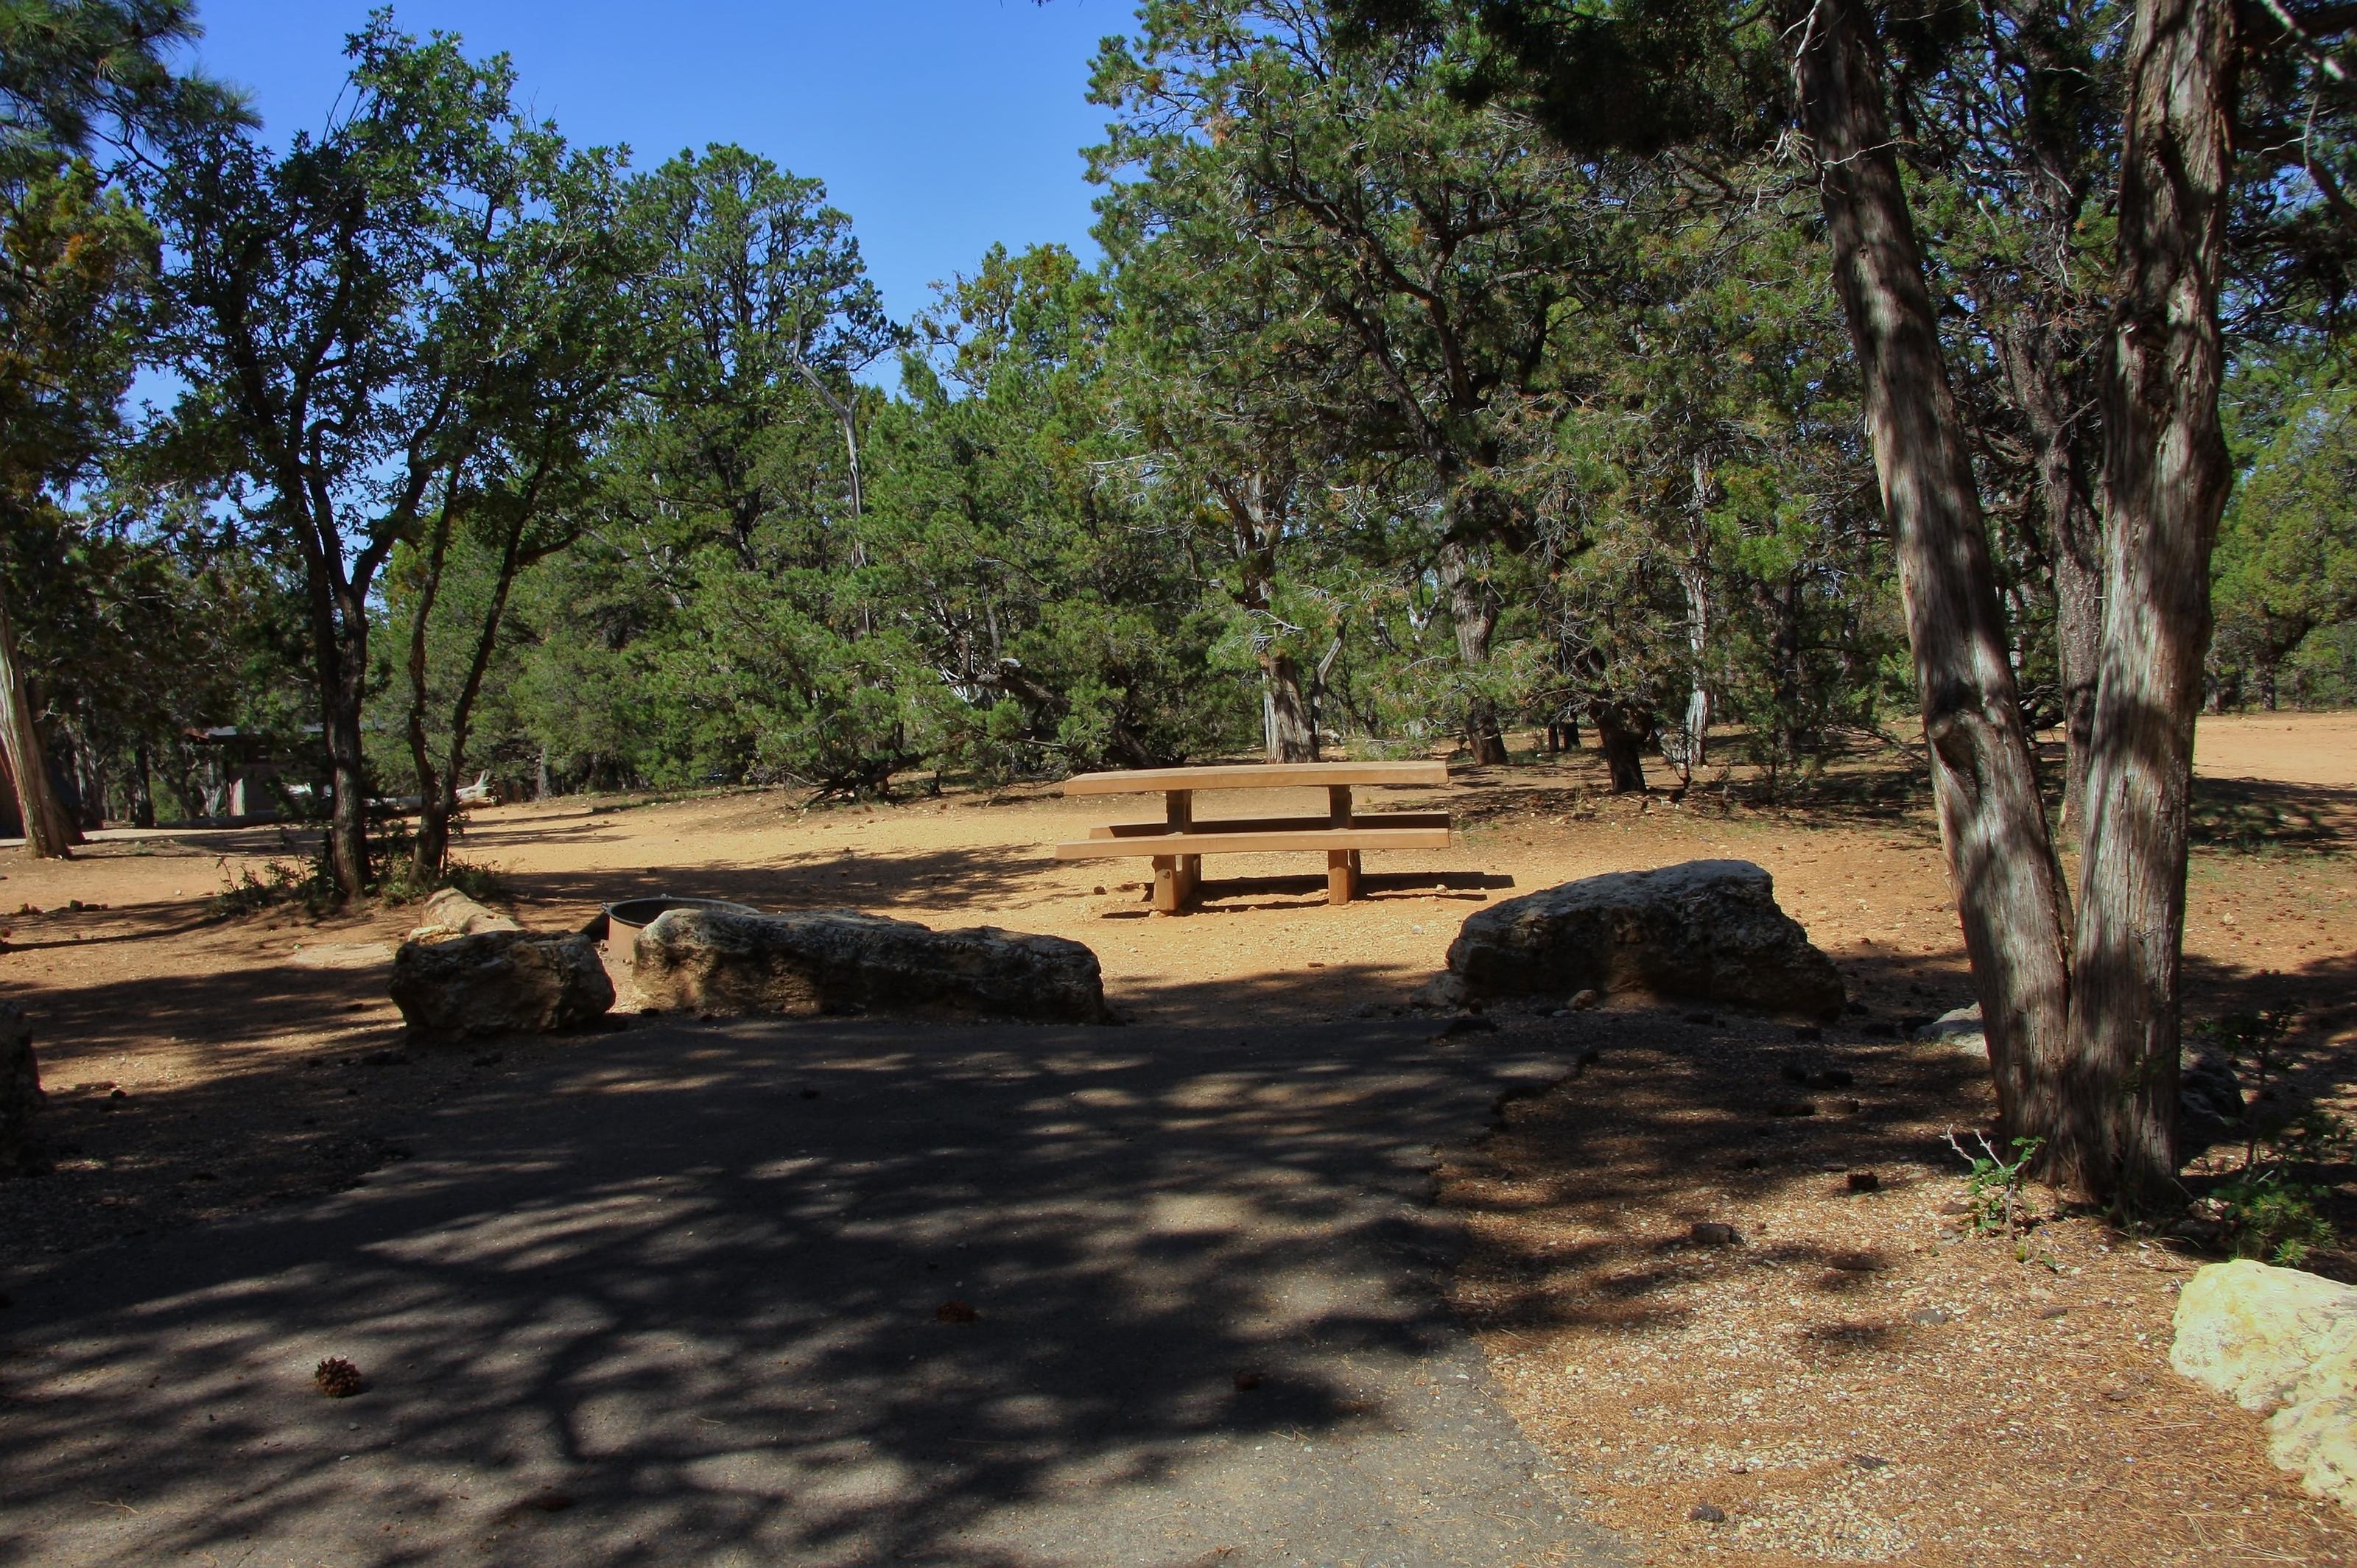 Picnic table, fire pit, and parking spot, Mather CampgroundPicnic table, fire pit, and parking spot for Oak Loop 264, Mather Campground